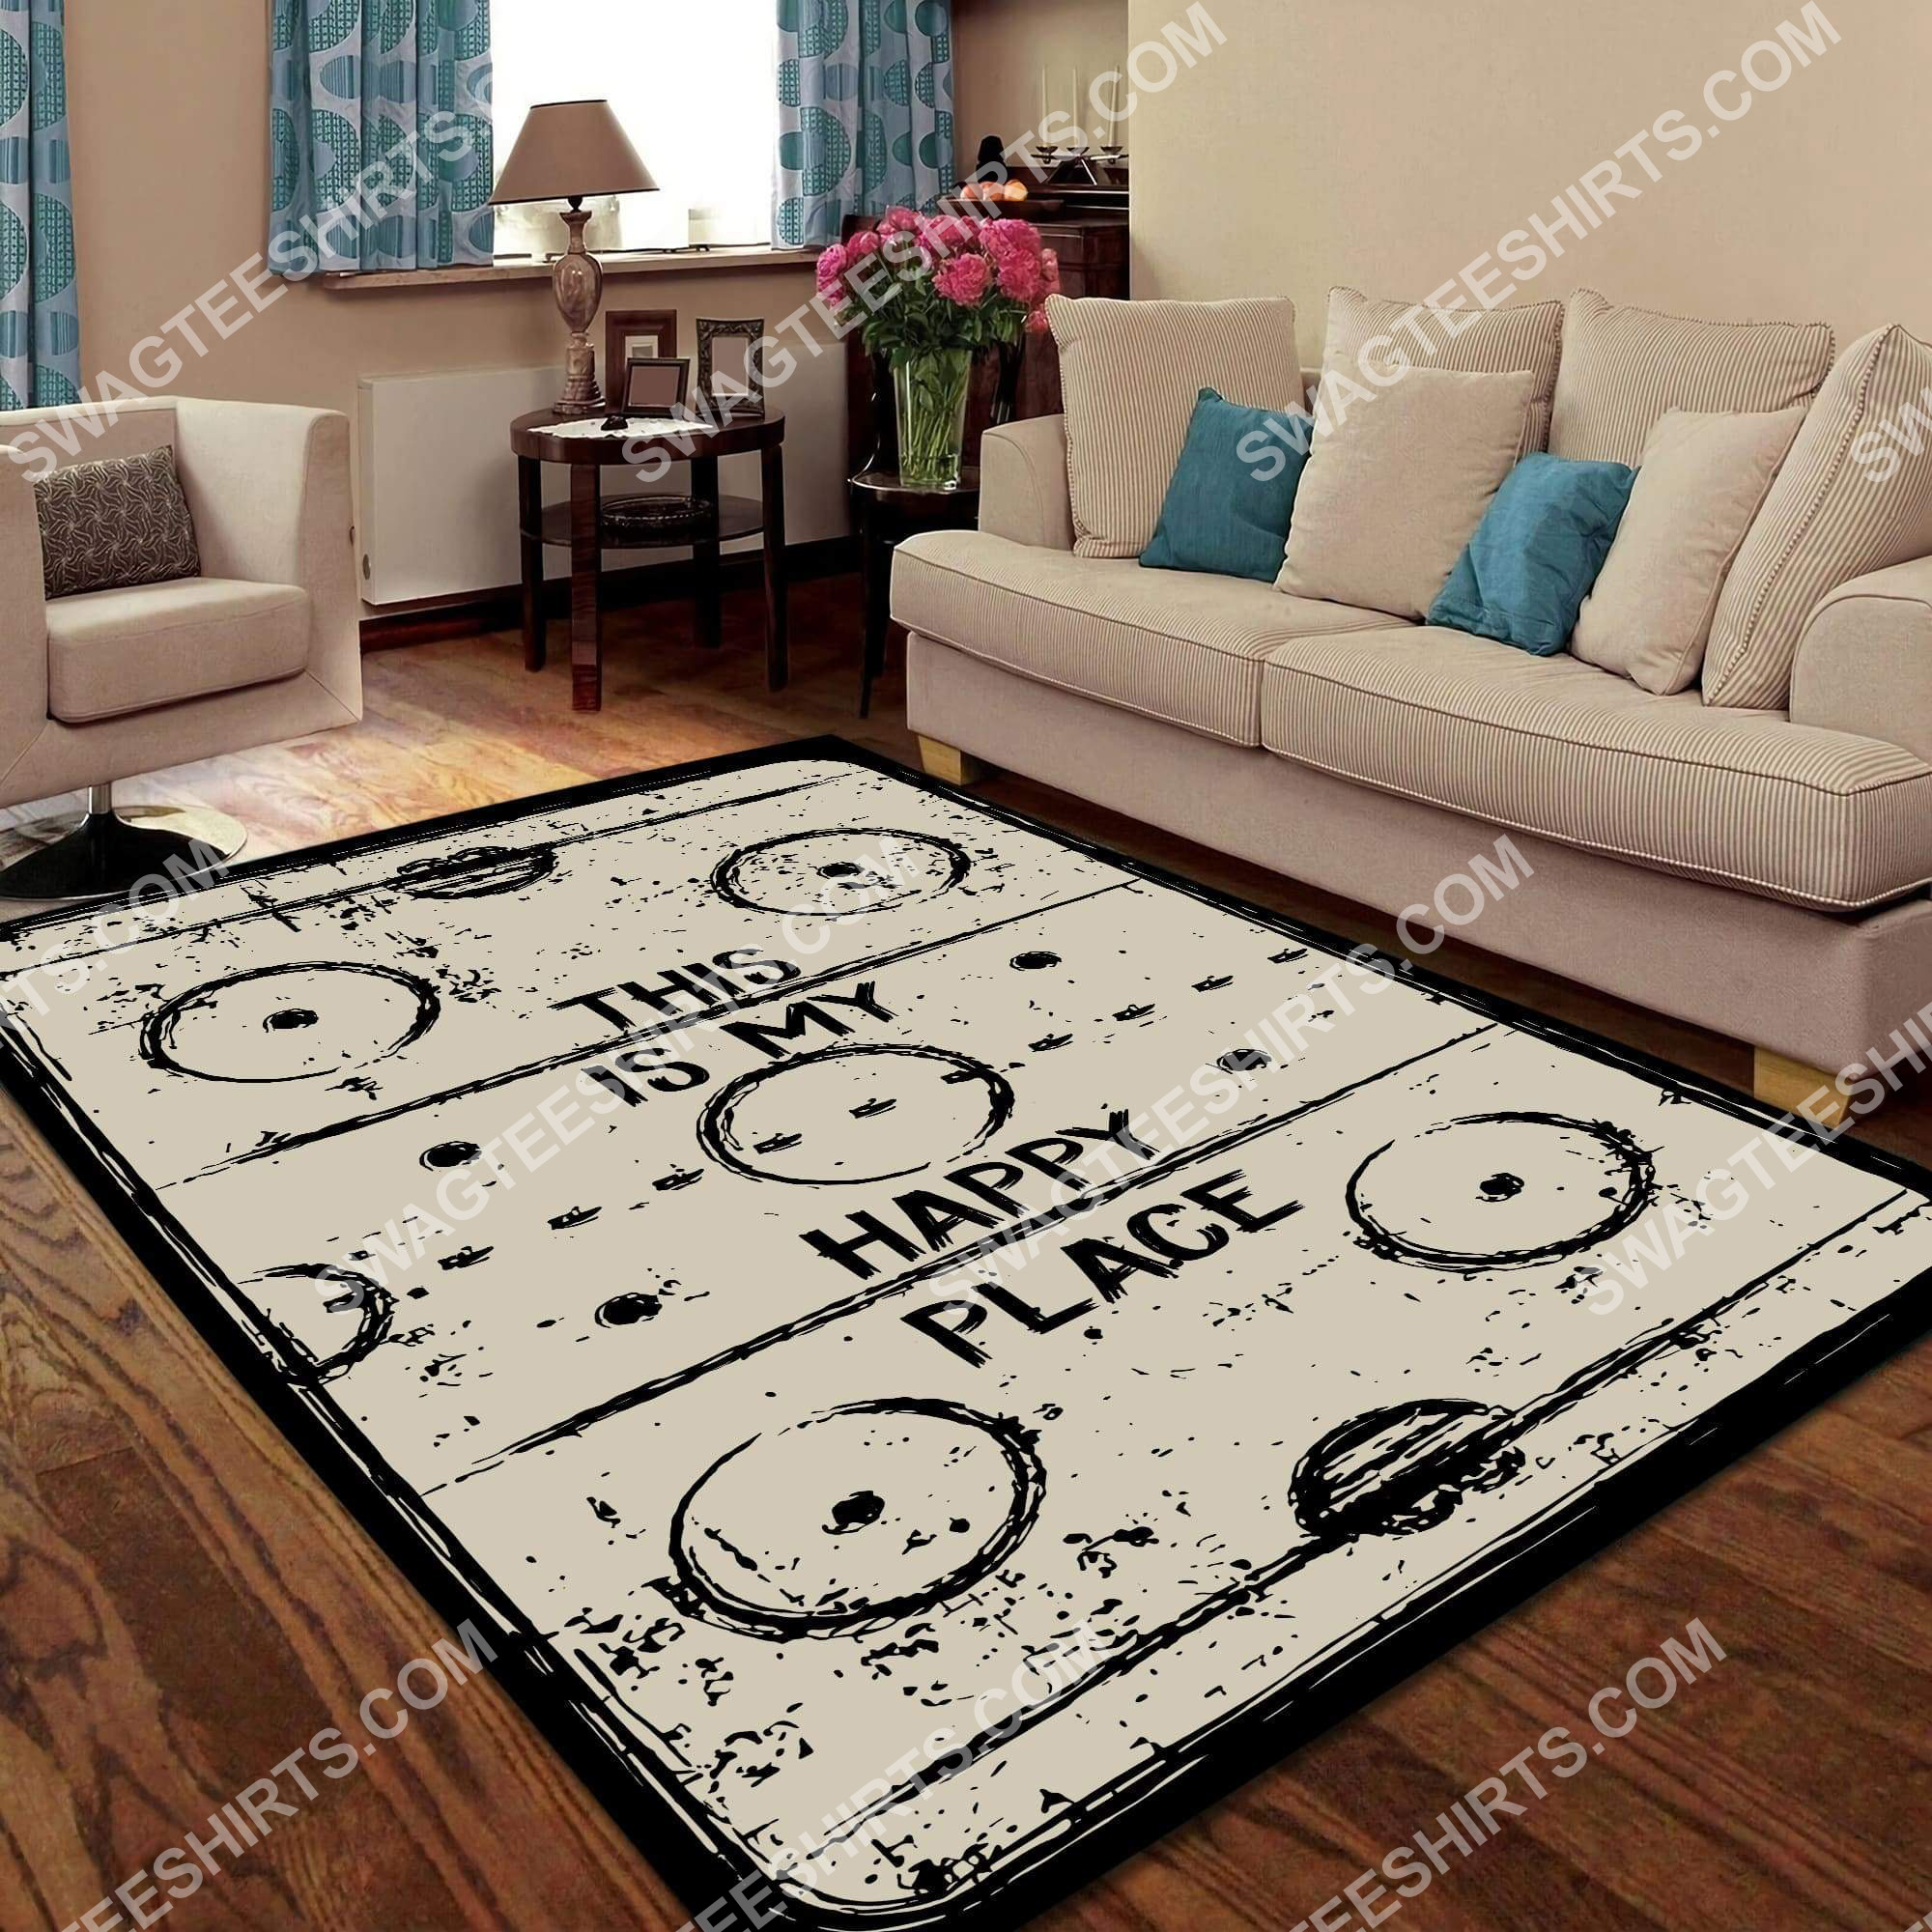 this is my happy place rectangle hockey all over printed rug 5(1) - Copy